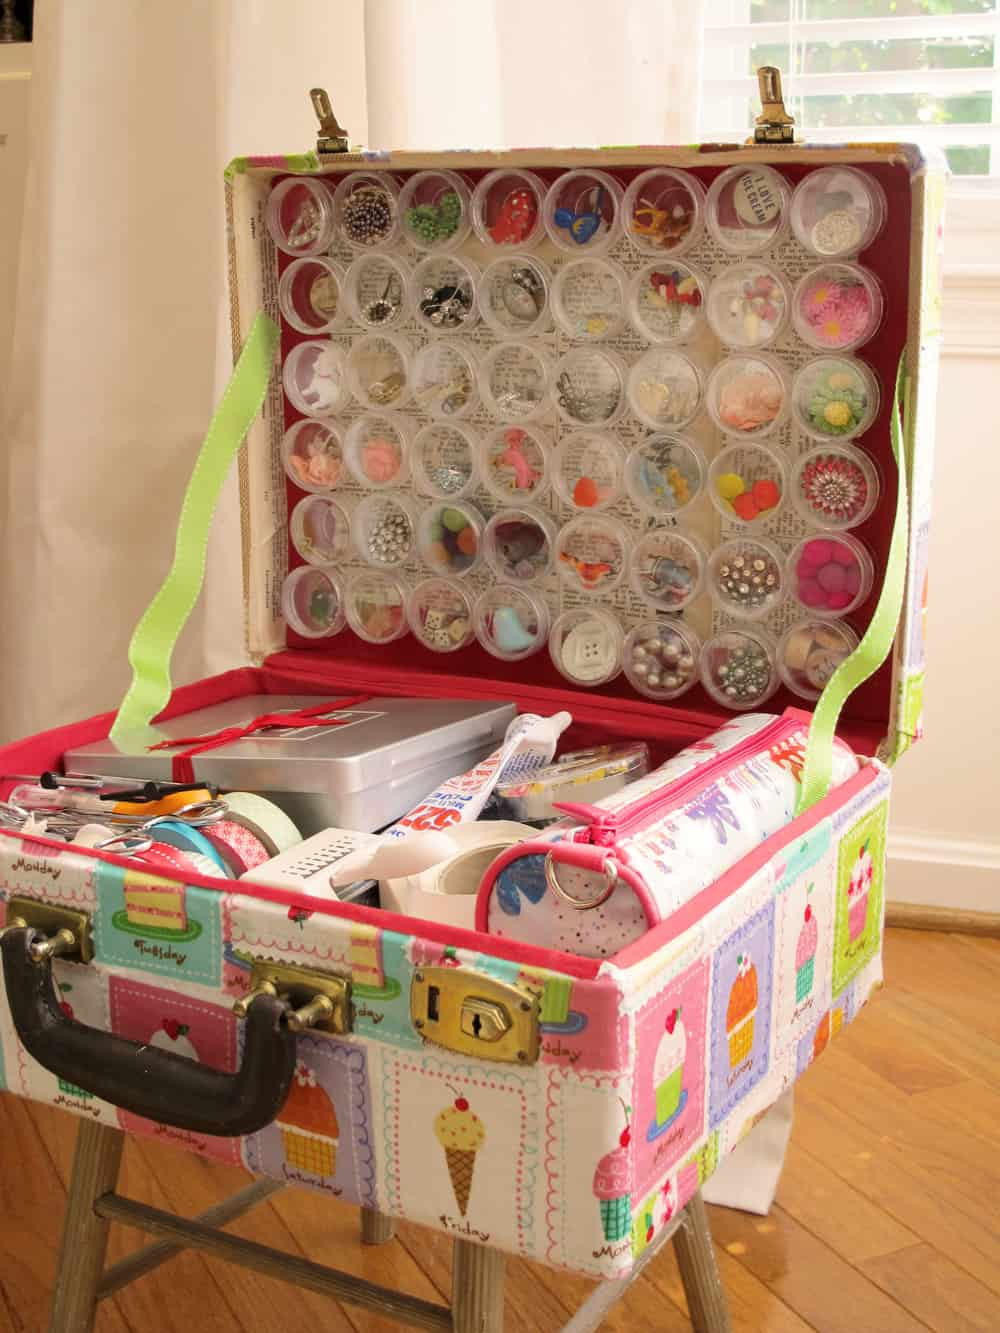 25 Beautifully Creative Ways to Recycle Vintage Suitcases at Home homesthetics decor (6)